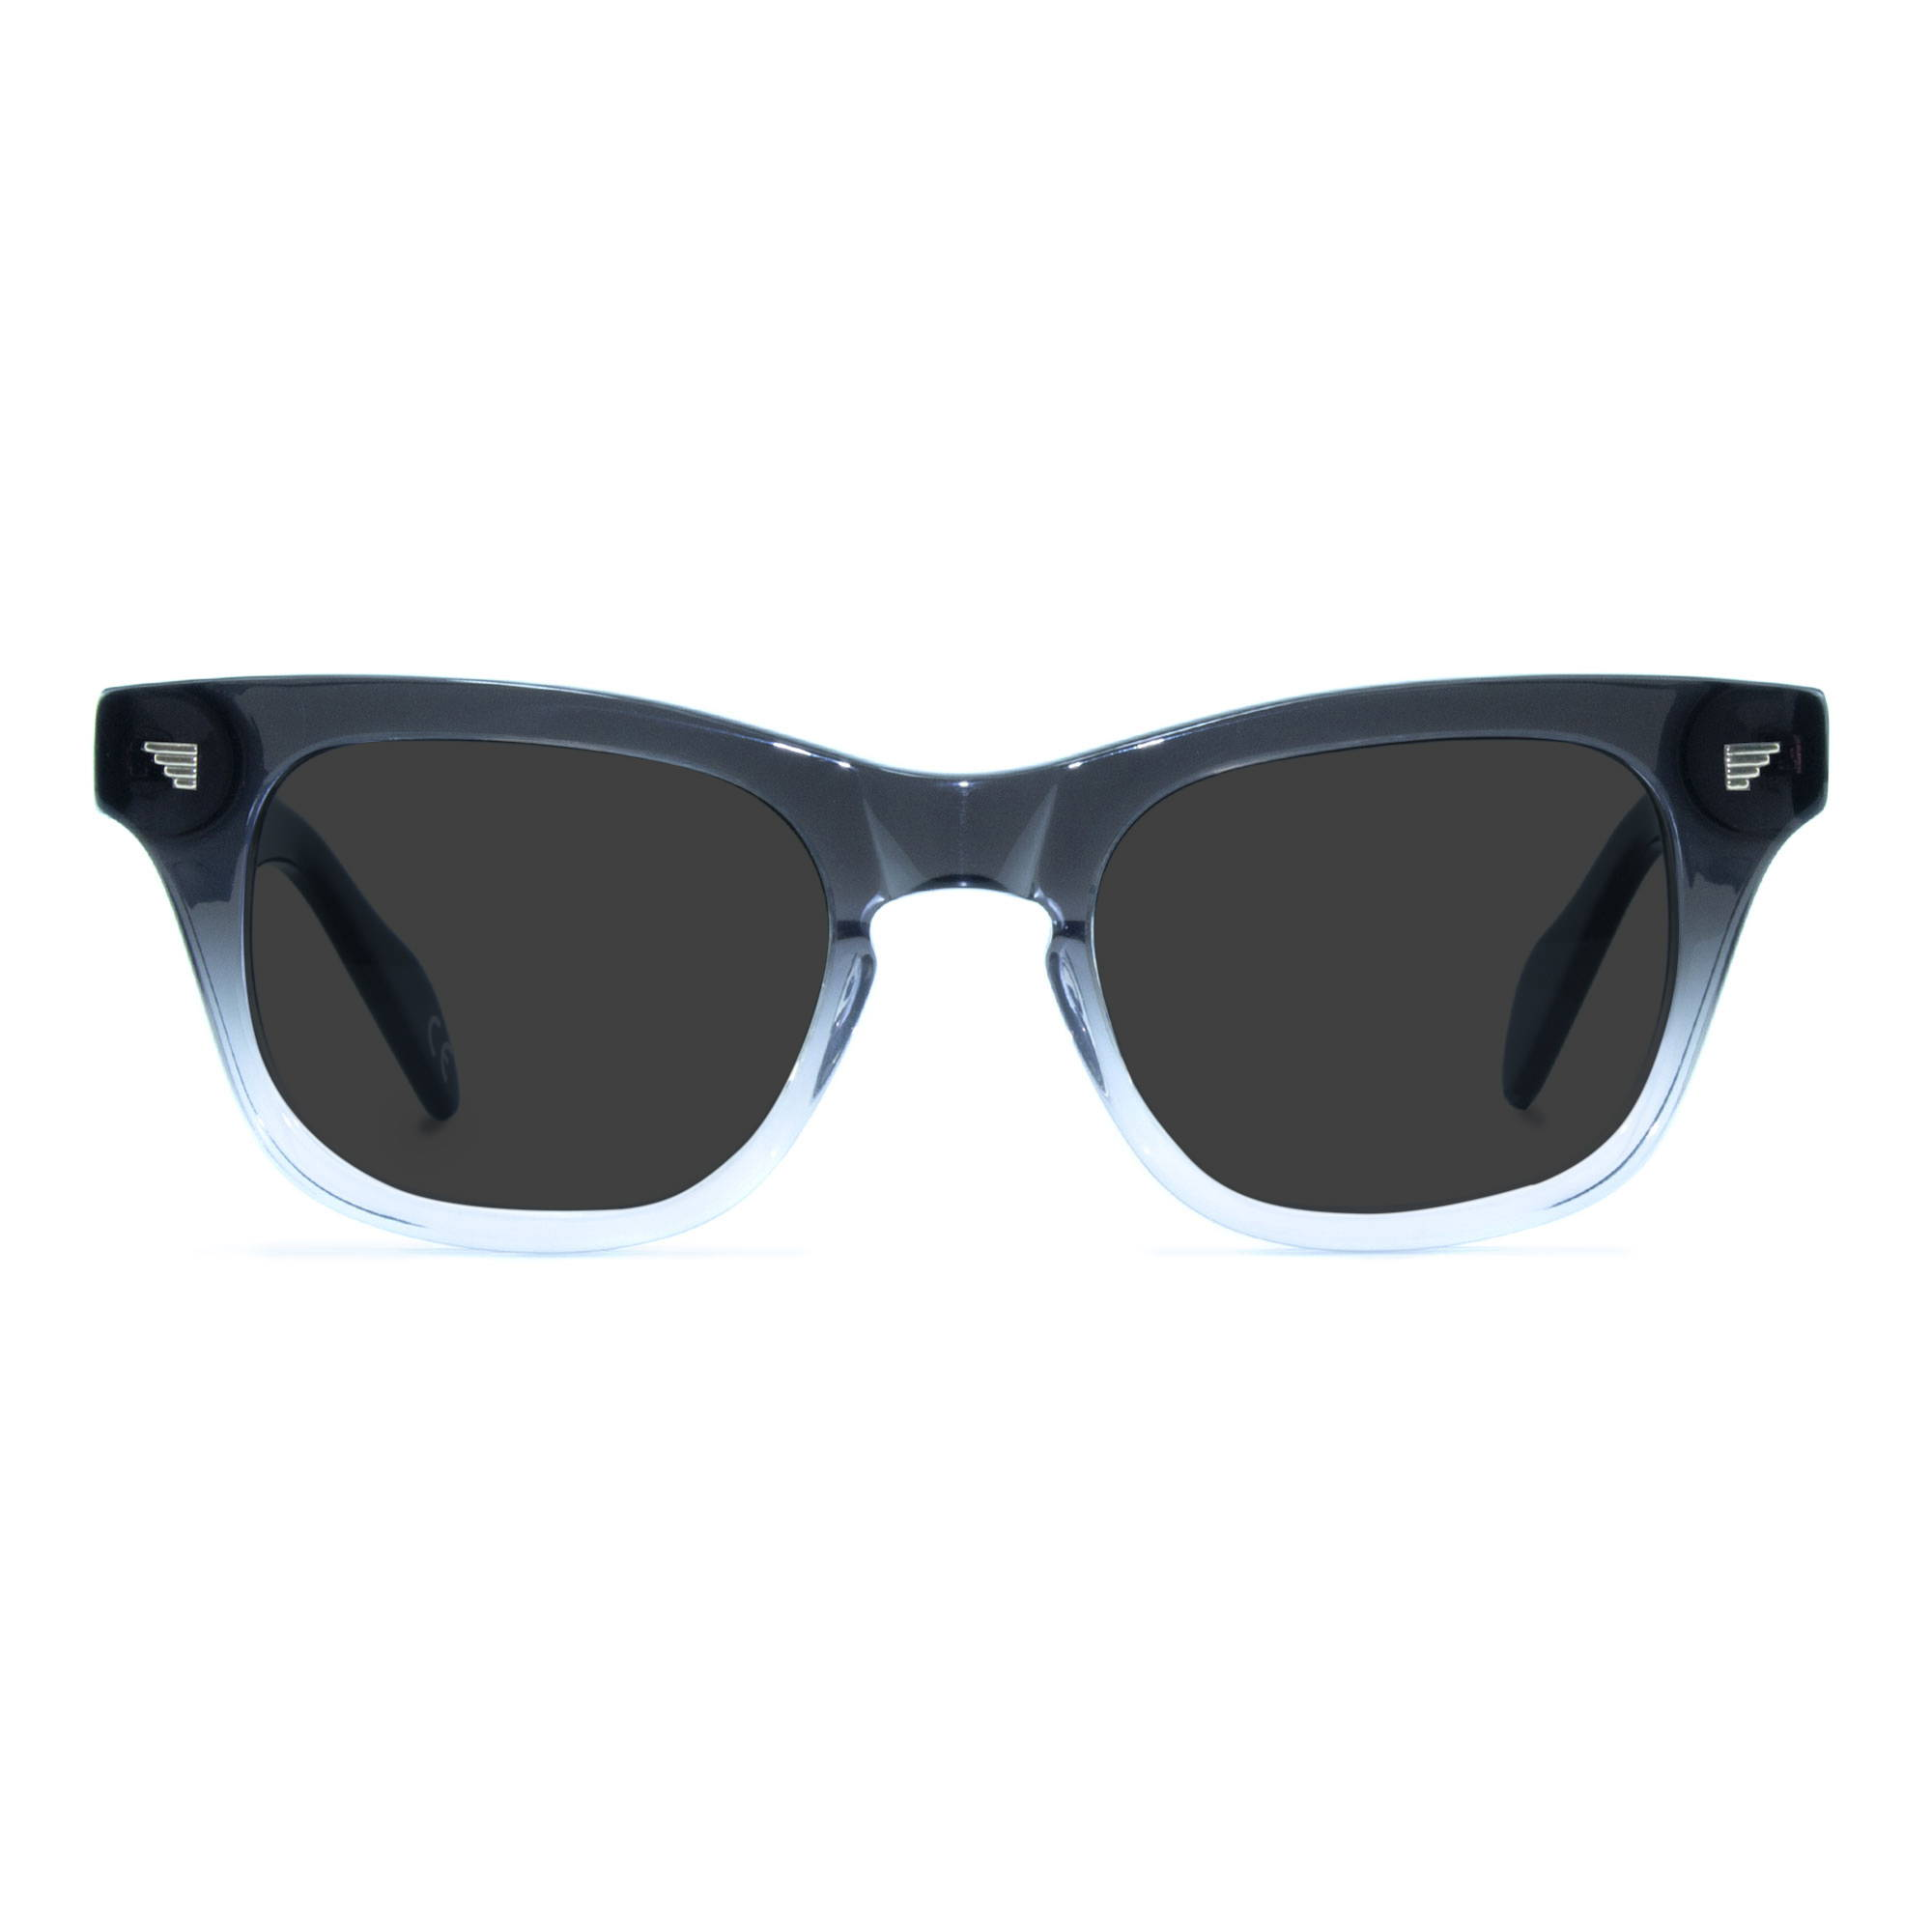 Joiuss russ black sunglasses